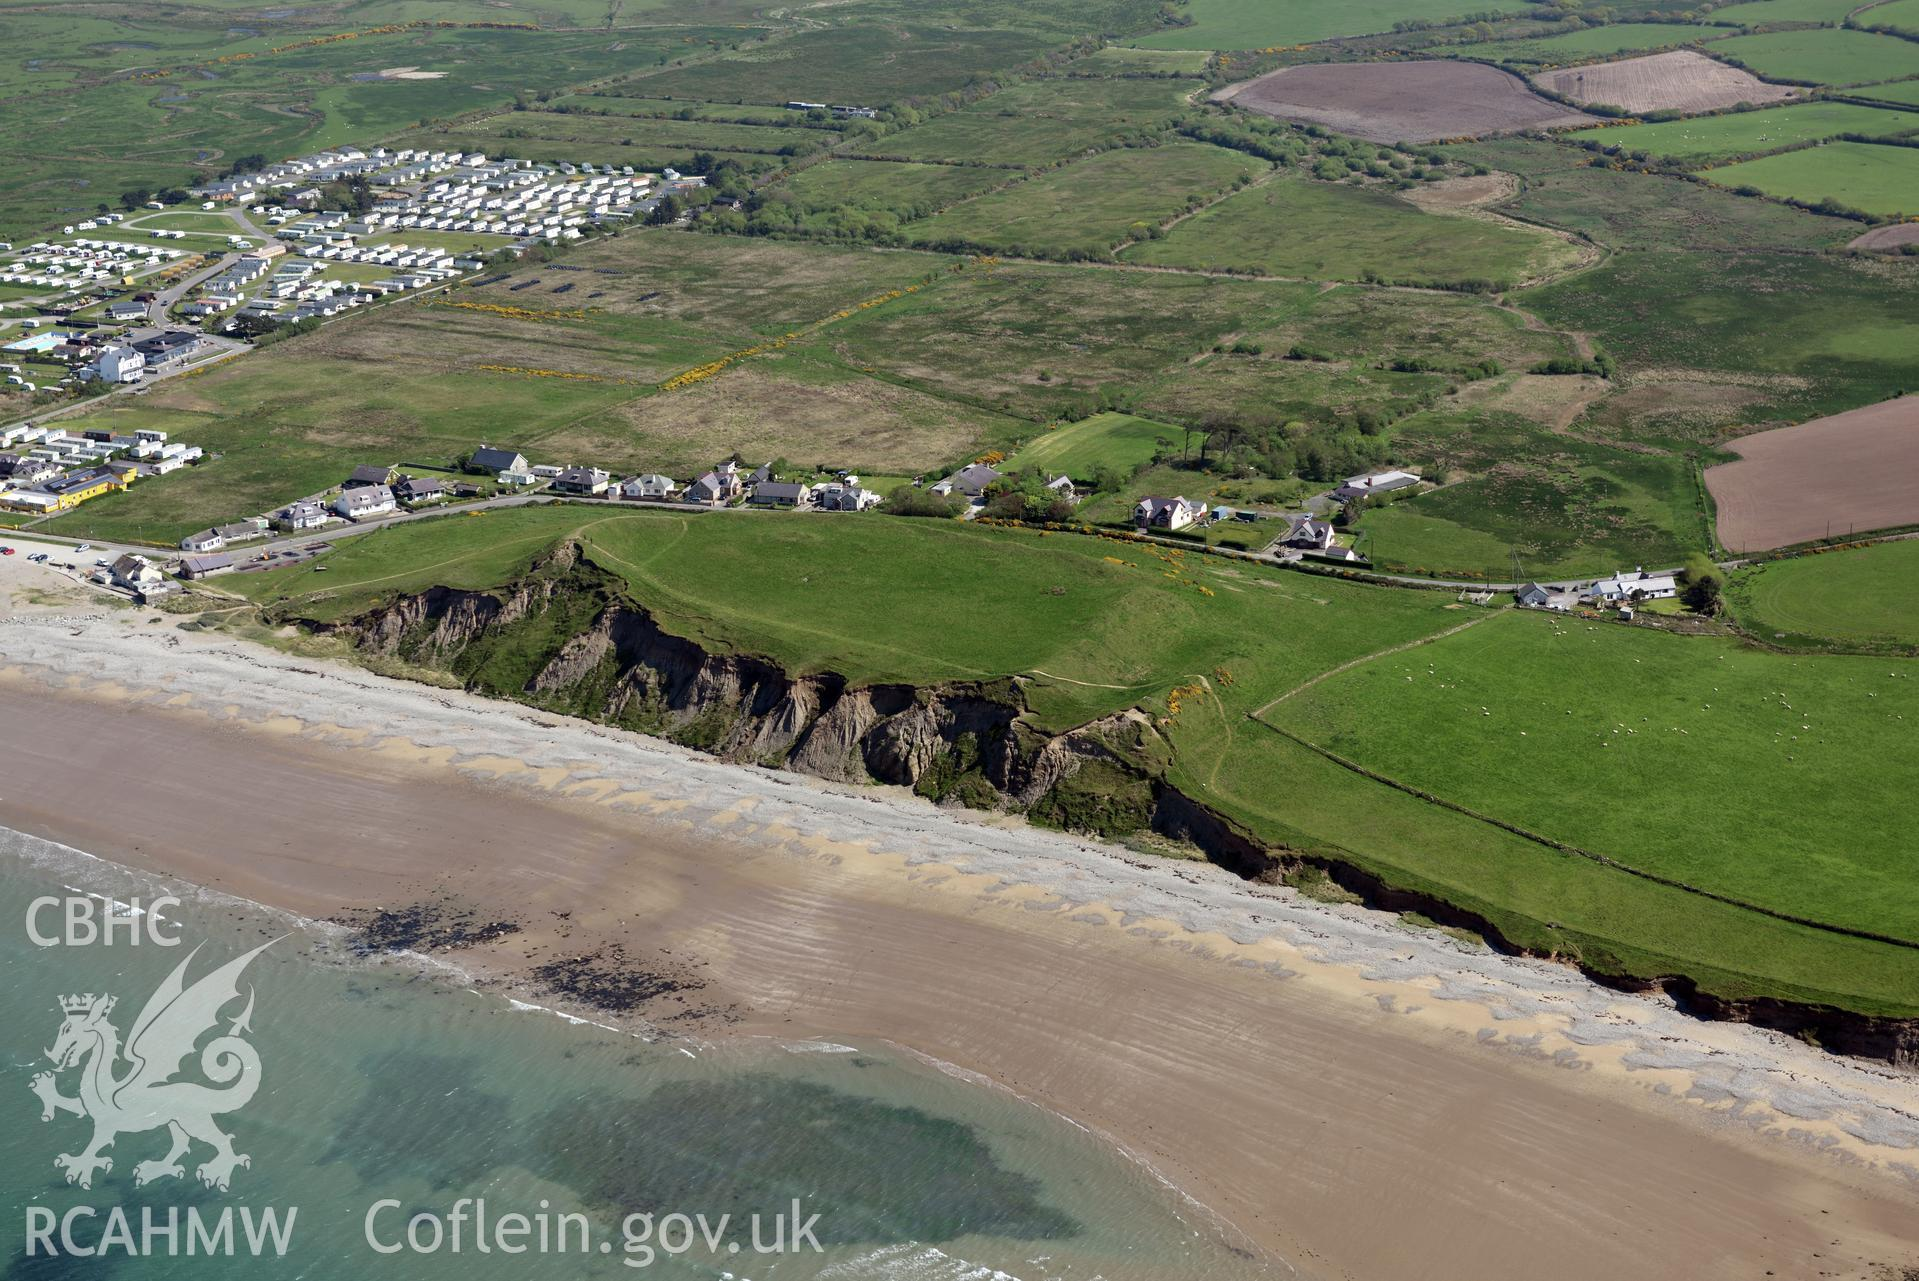 Aerial photography of Dinas Dinlle taken on 3rd May 2017.  Baseline aerial reconnaissance survey for the CHERISH Project. ? Crown: CHERISH PROJECT 2017. Produced with EU funds through the Ireland Wales Co-operation Programme 2014-2020. All material made